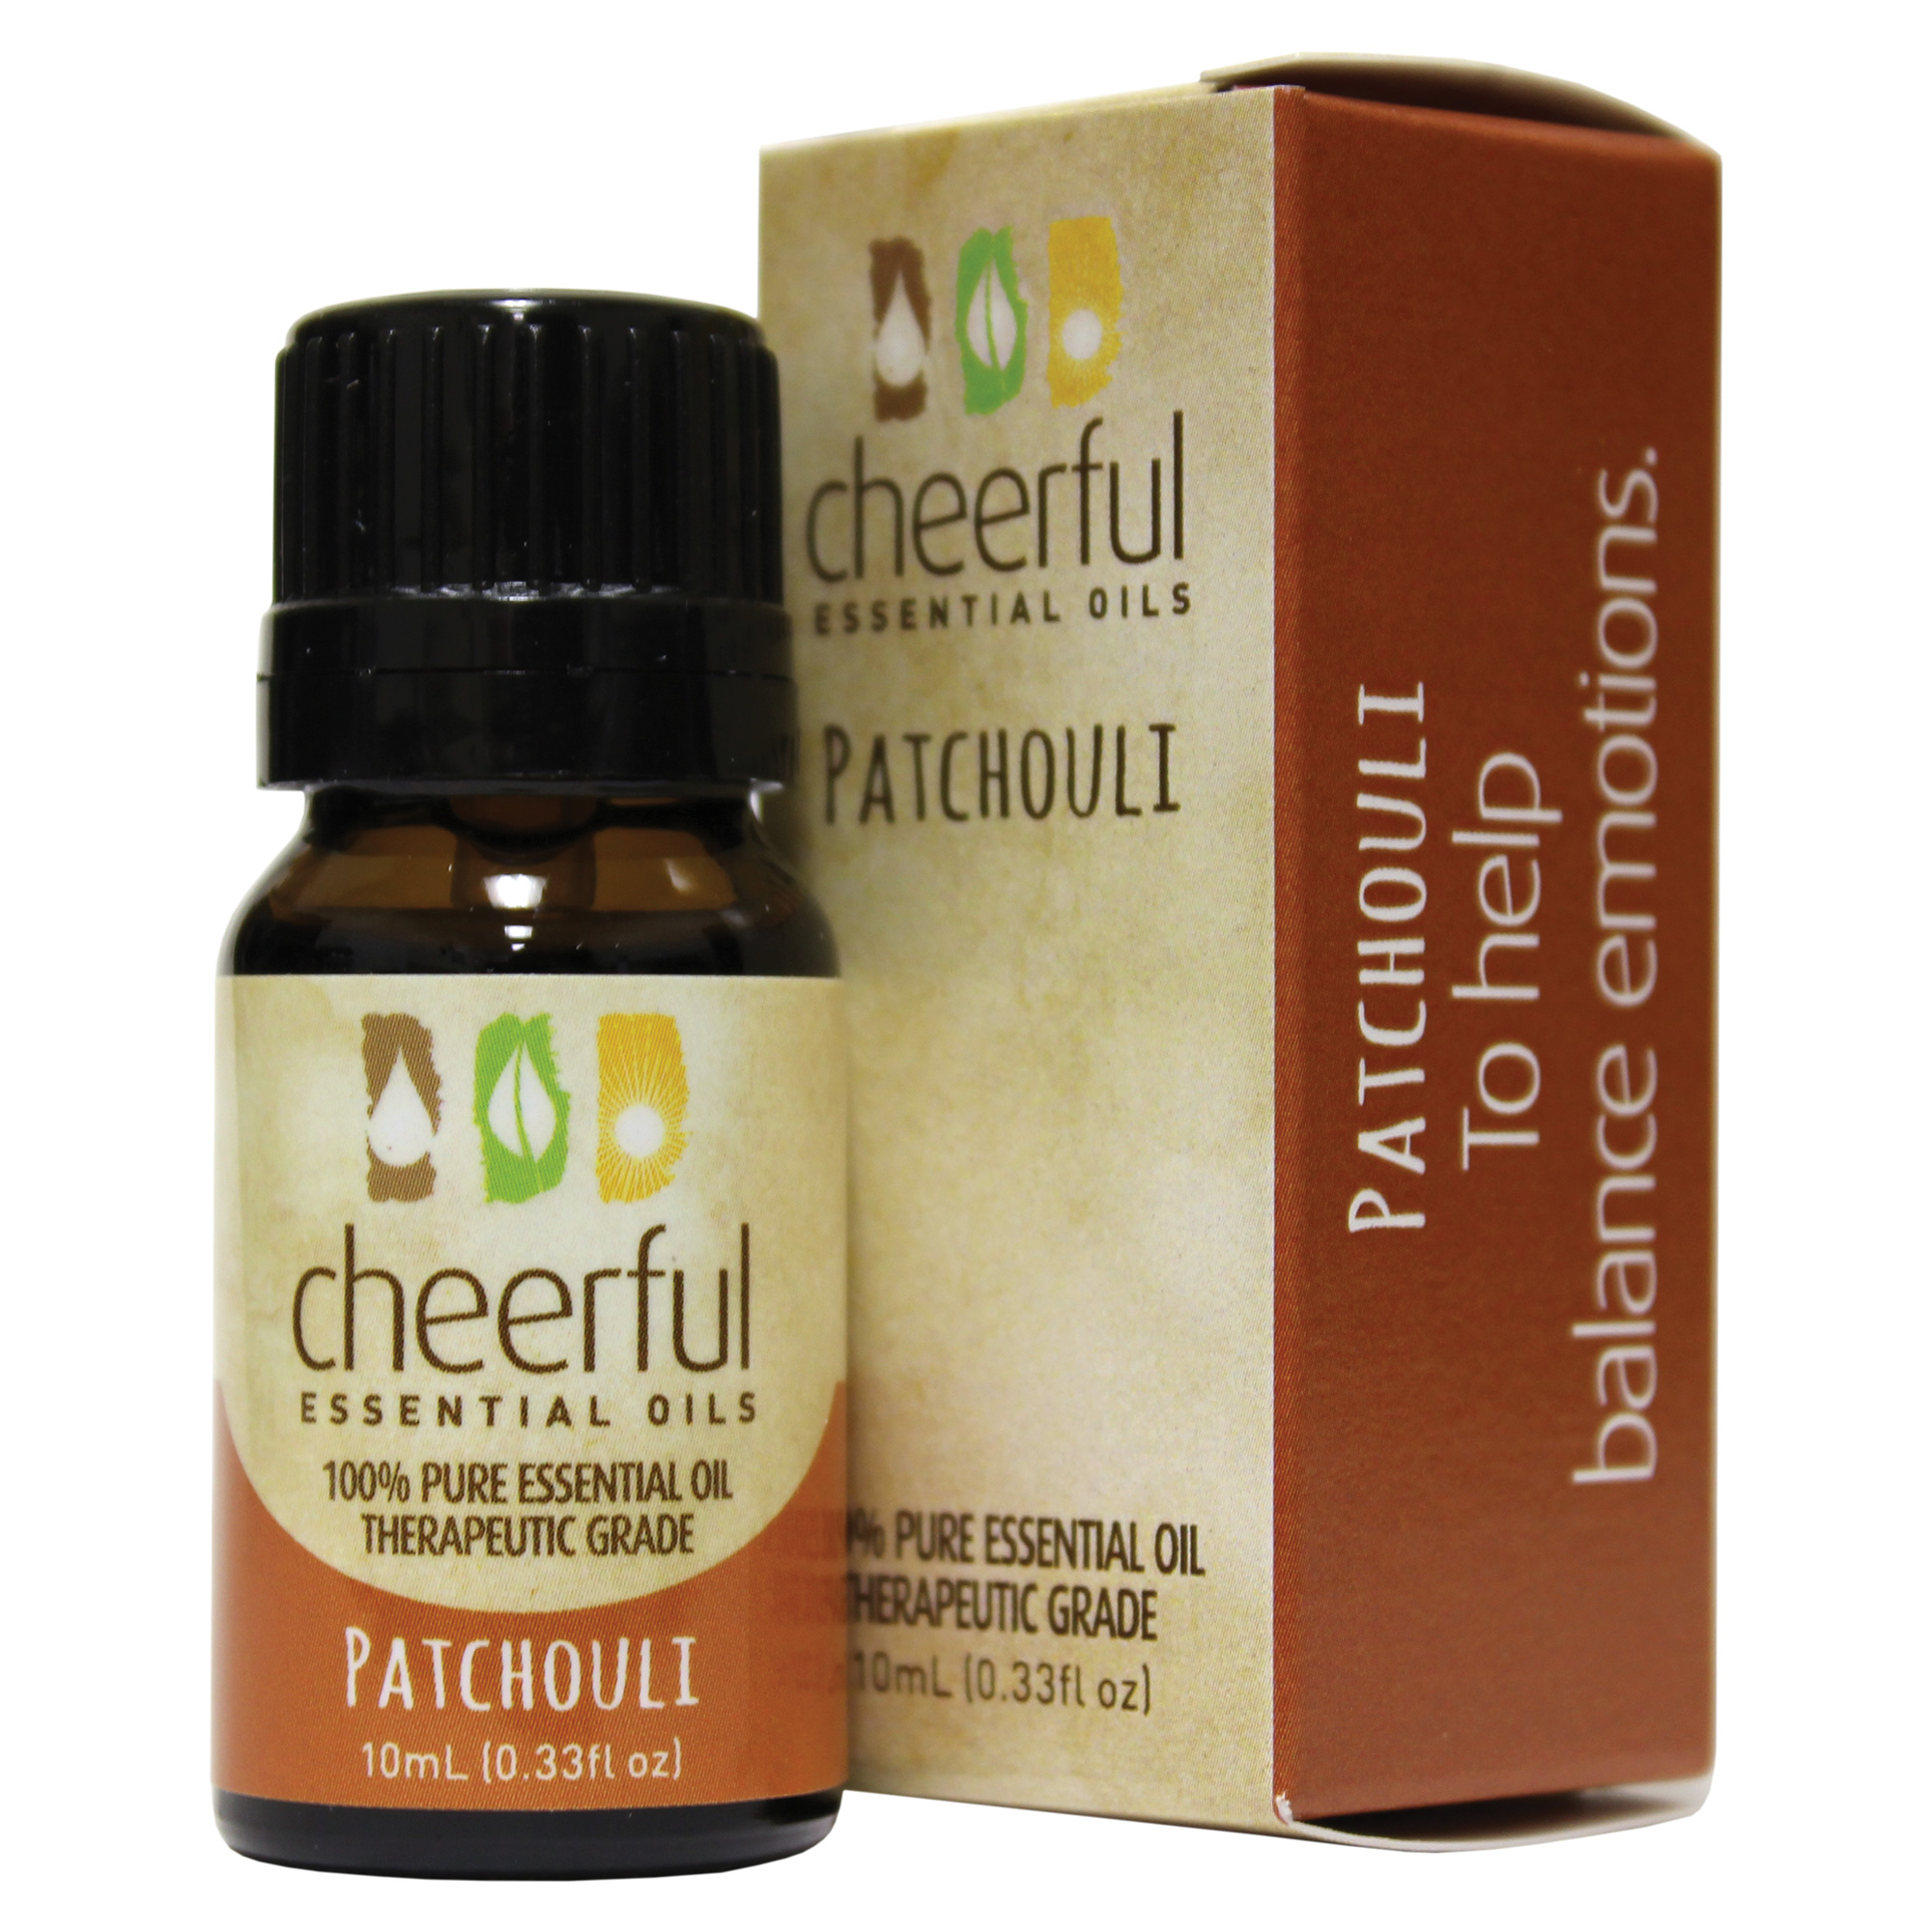 PATCHOULI ESSENTIAL OIL 10 ML UPC# 674623018287